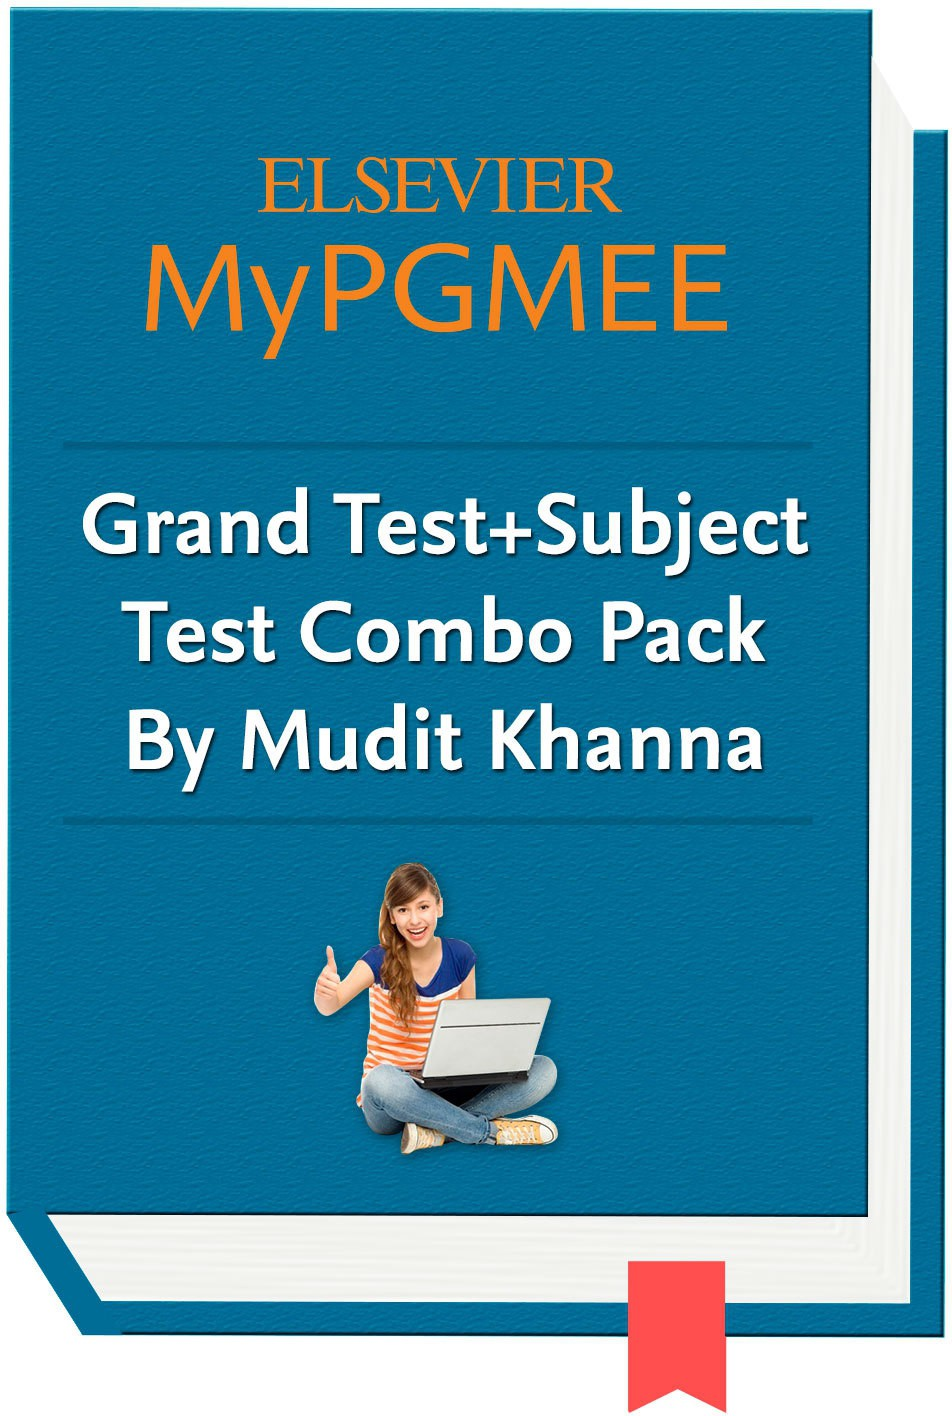 Elsevier MyPGMEE - Grand Test + Subject Test Combo Pack by Mudit Khanna Online Course(Voucher)